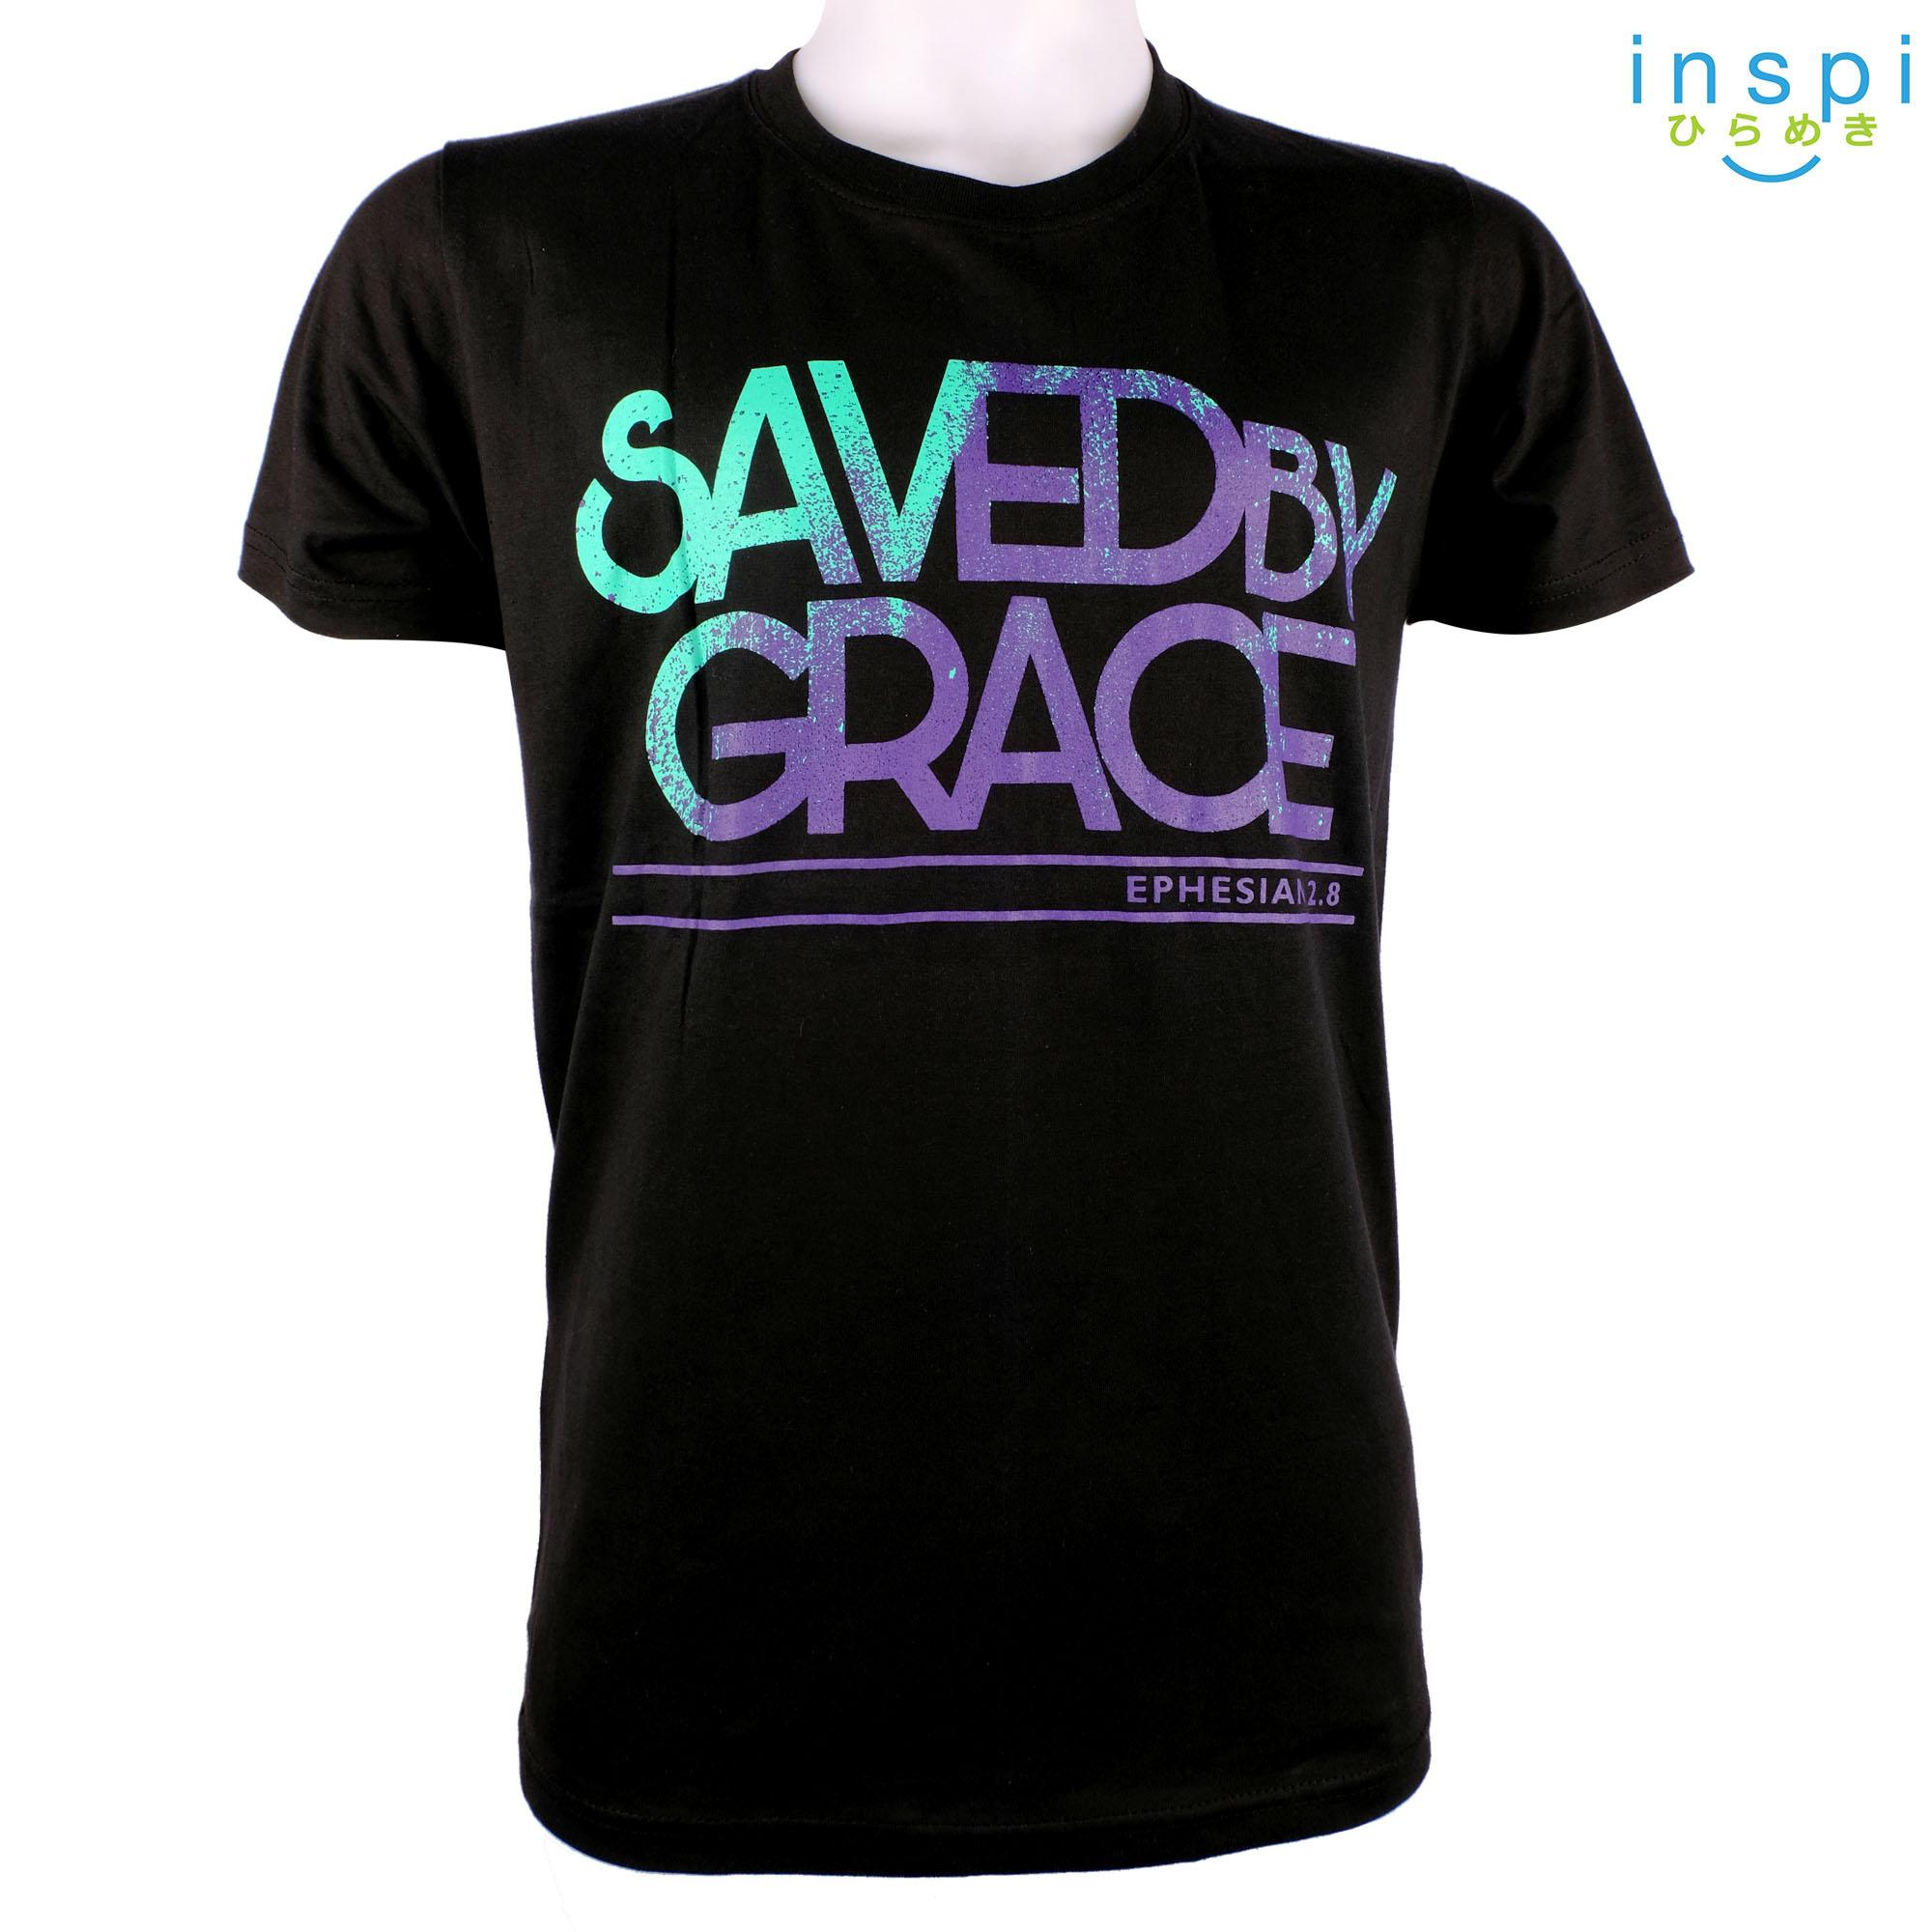 196e6c366a7344 INSPI Shirt Saved by Grace (Black) tshirt printed graphic tee Mens t shirt  shirts